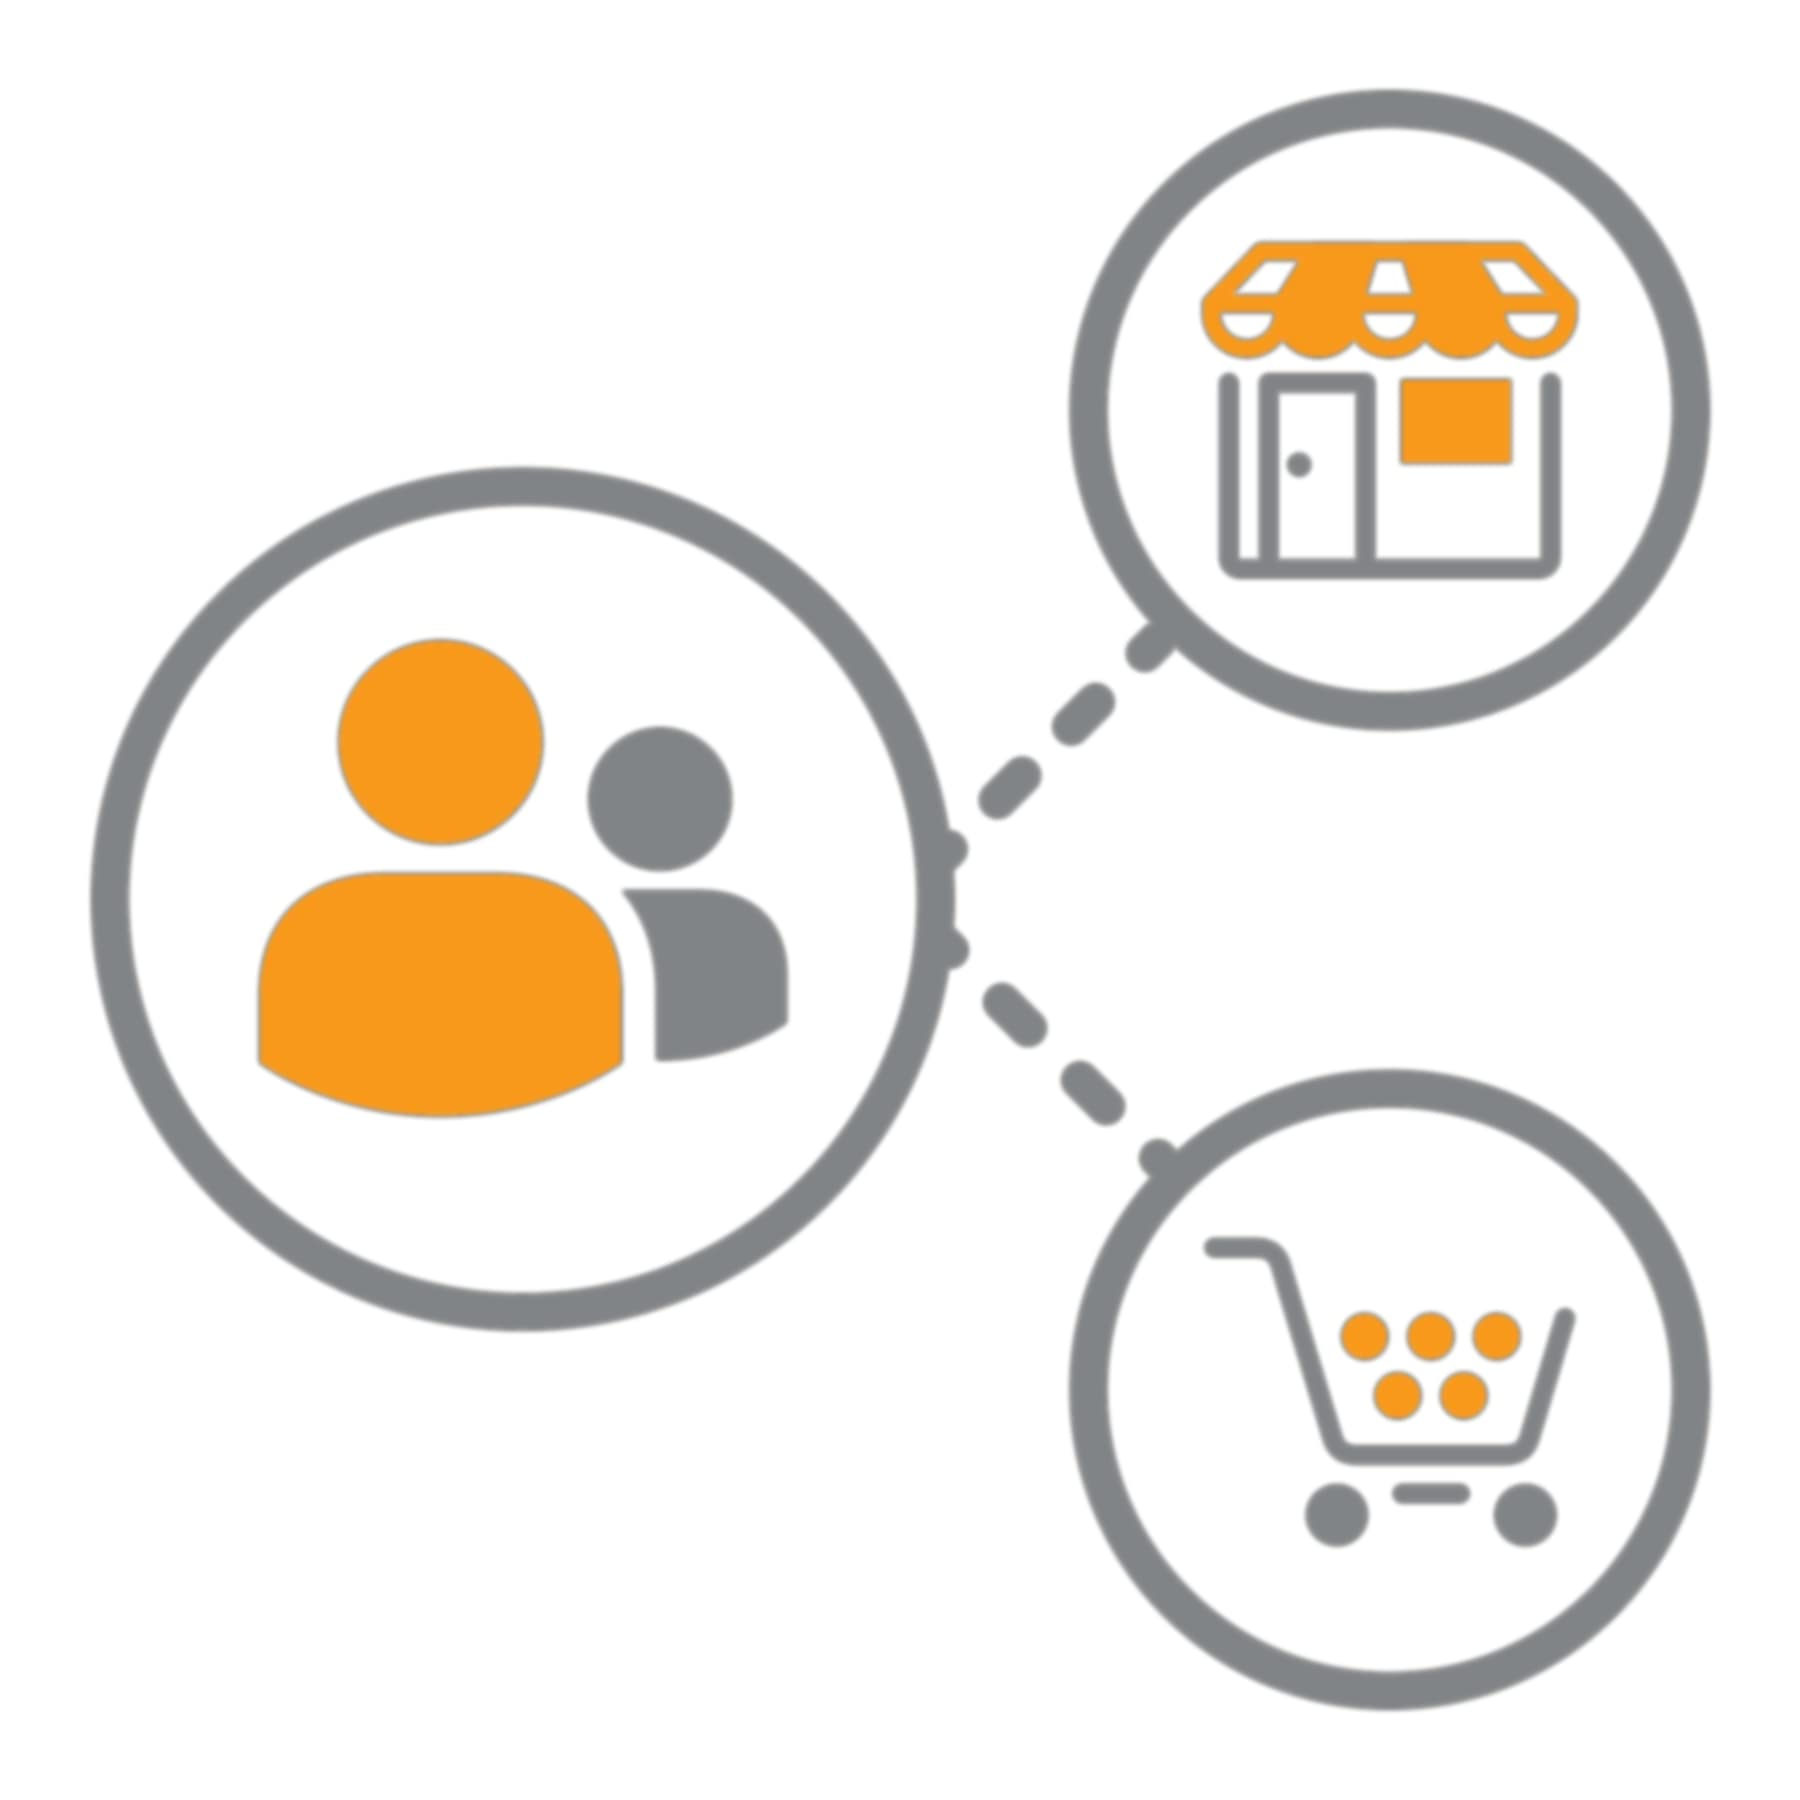 Dotted line connecting users to a store front and shopping cart